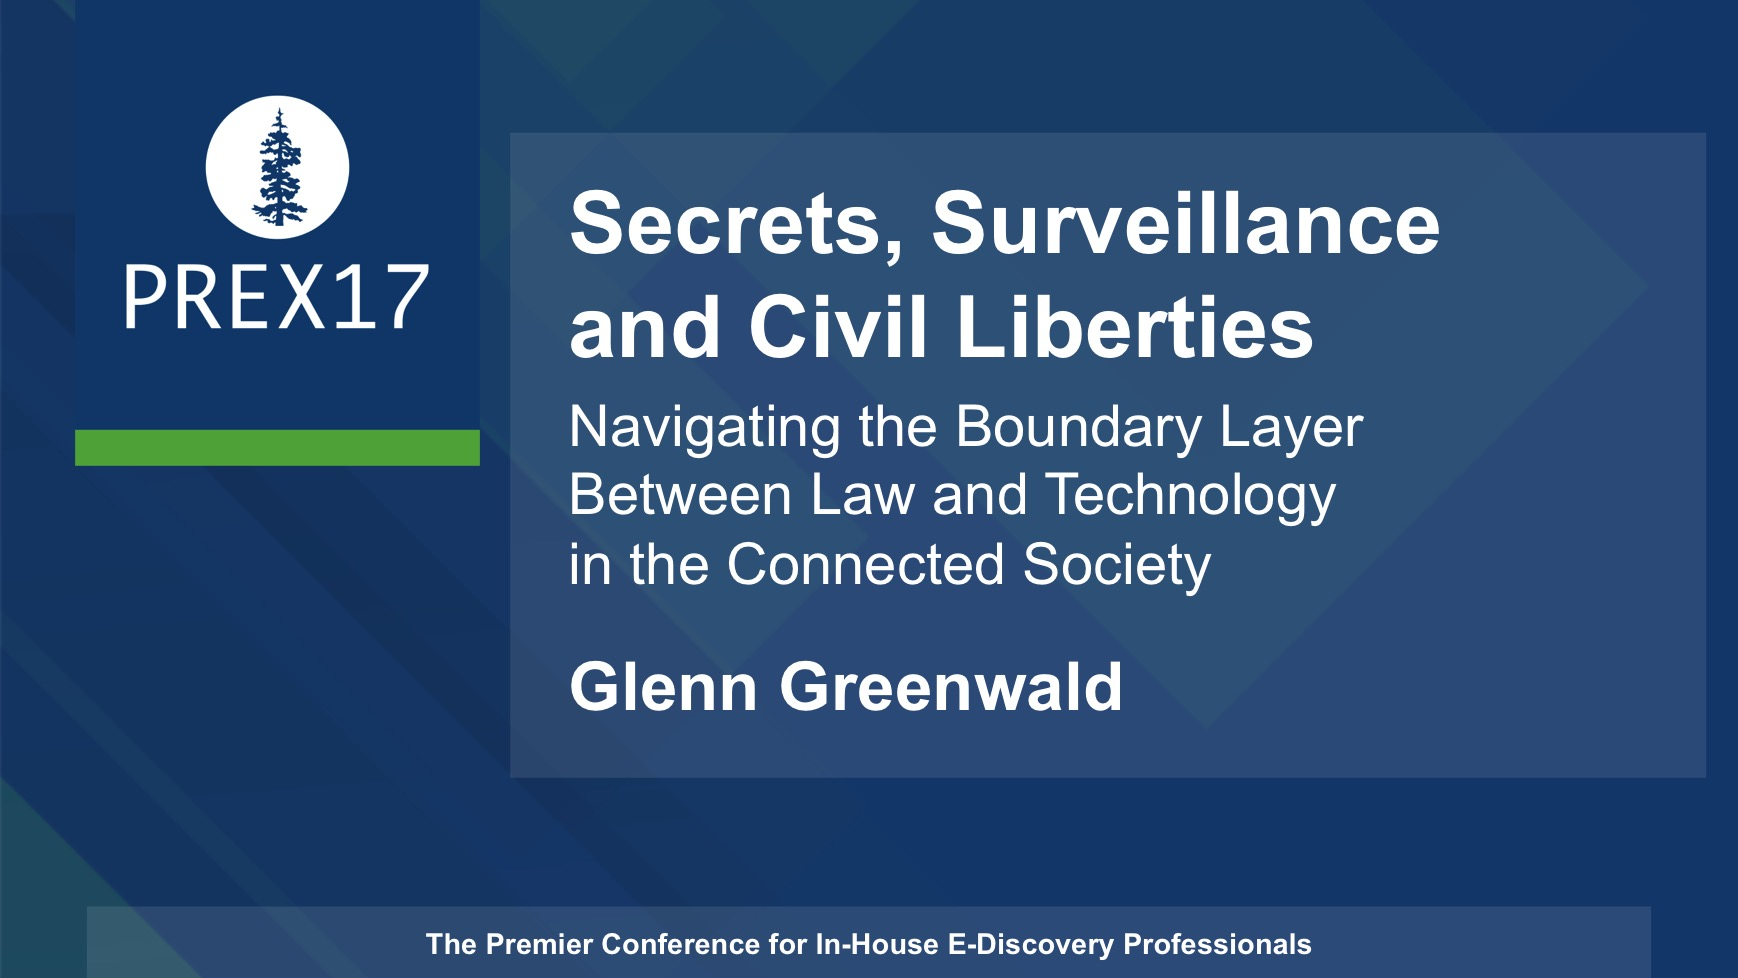 Keynote: Glenn Greenwald, Pulitzer-Prize Winning Journalist, Constitutional Lawyer and New York Times Best-Selling Author